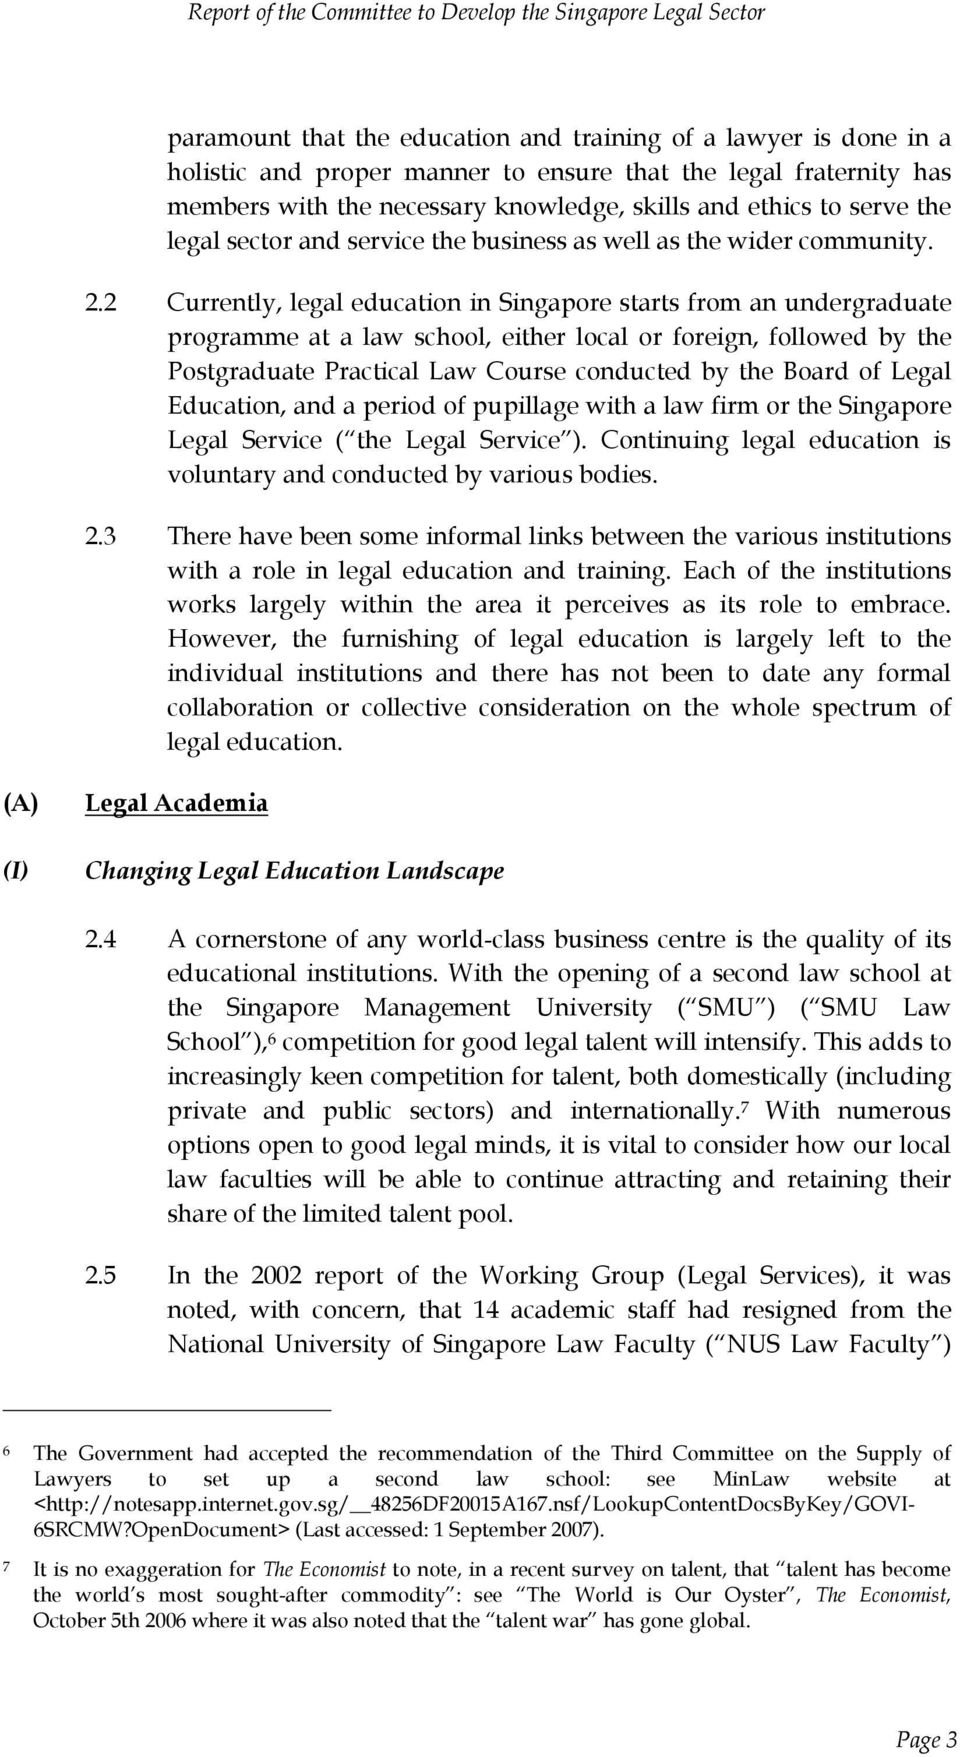 2 Currently, legal education in Singapore starts from an undergraduate programme at a law school, either local or foreign, followed by the Postgraduate Practical Law Course conducted by the Board of